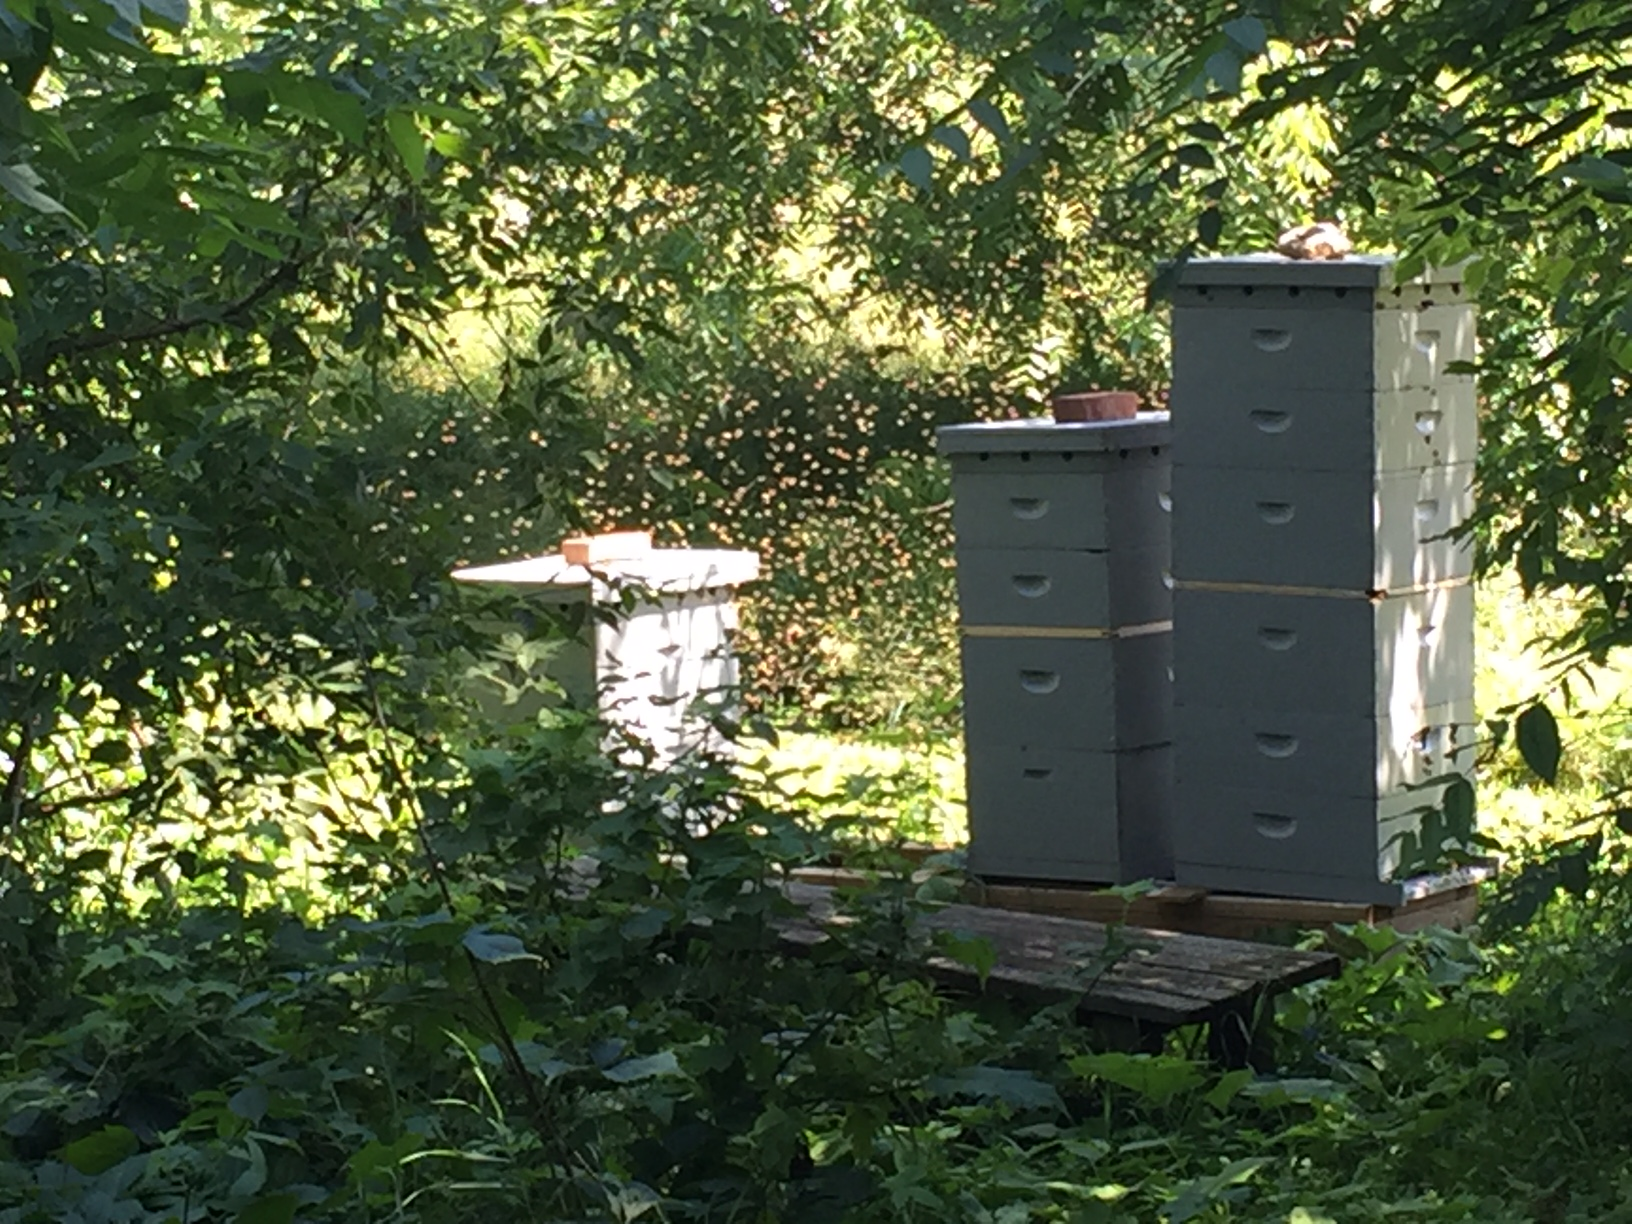 bees swarming, Homestead Monthly: July 2016 {weasel trouble, chicks, and the great harvest begins}